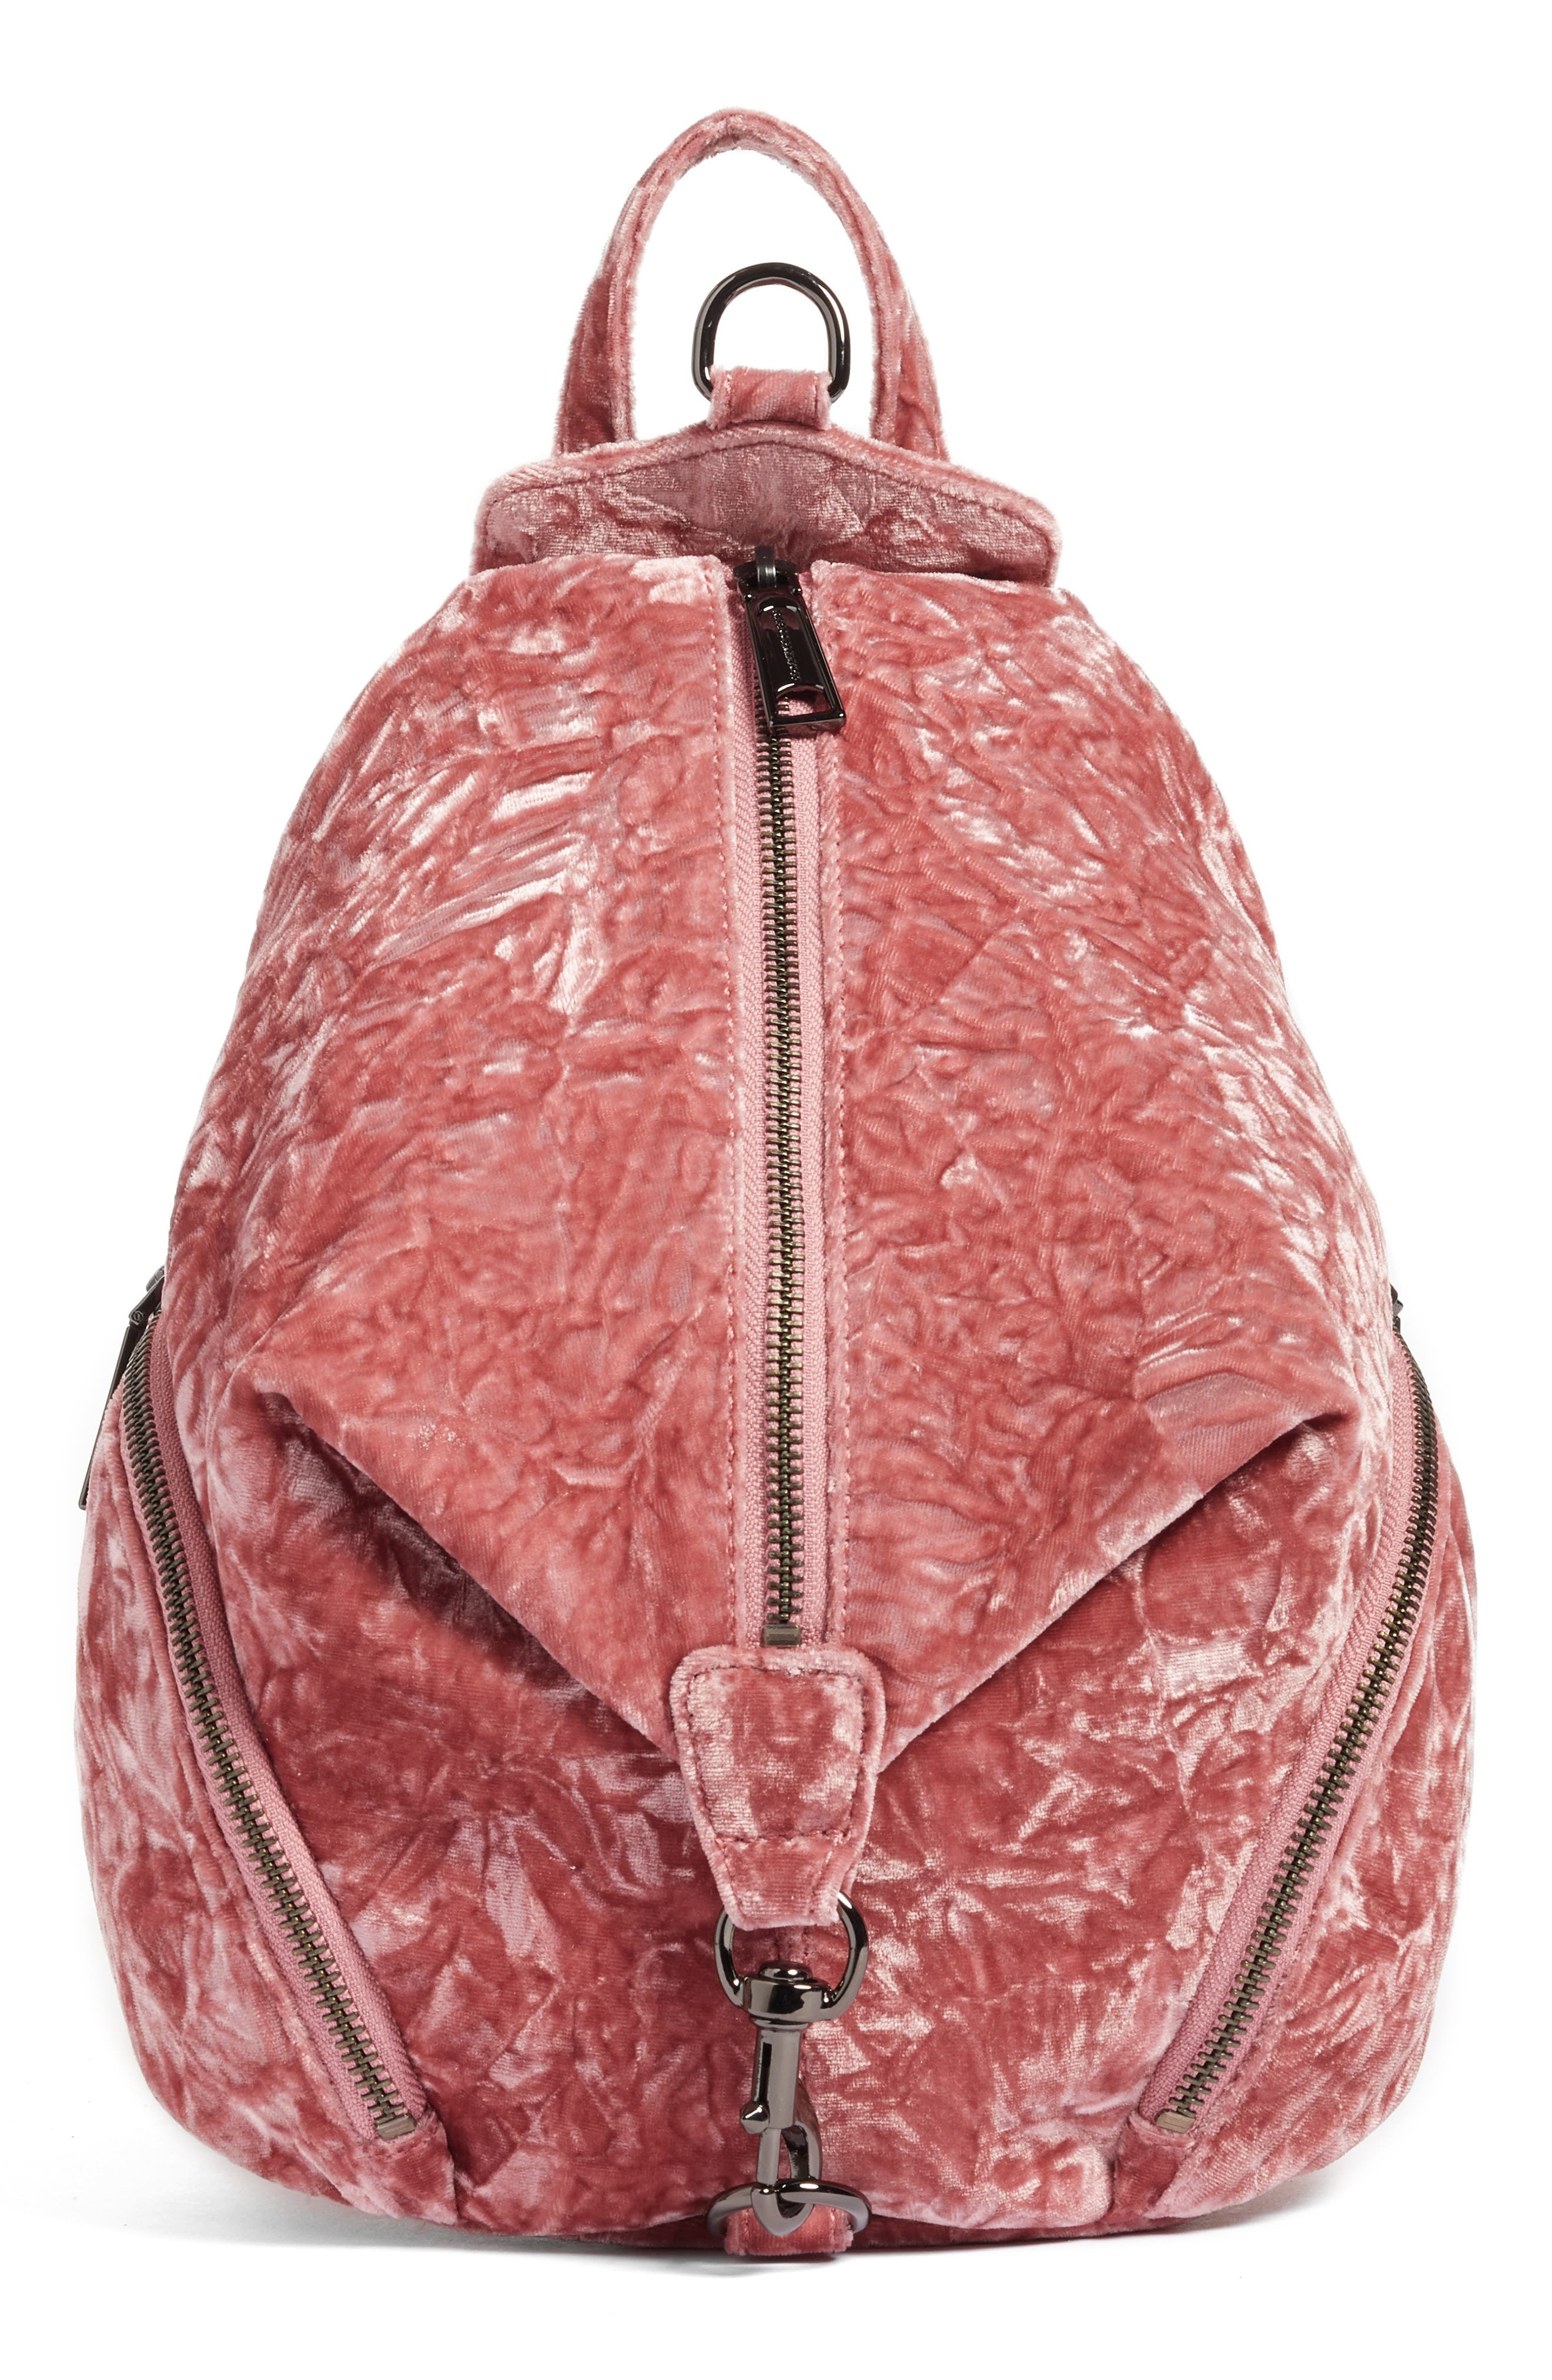 Medium Julian Velvet Backpack,                             Main thumbnail 1, color,                             Pink Velvet/ Gunmetal Hardware